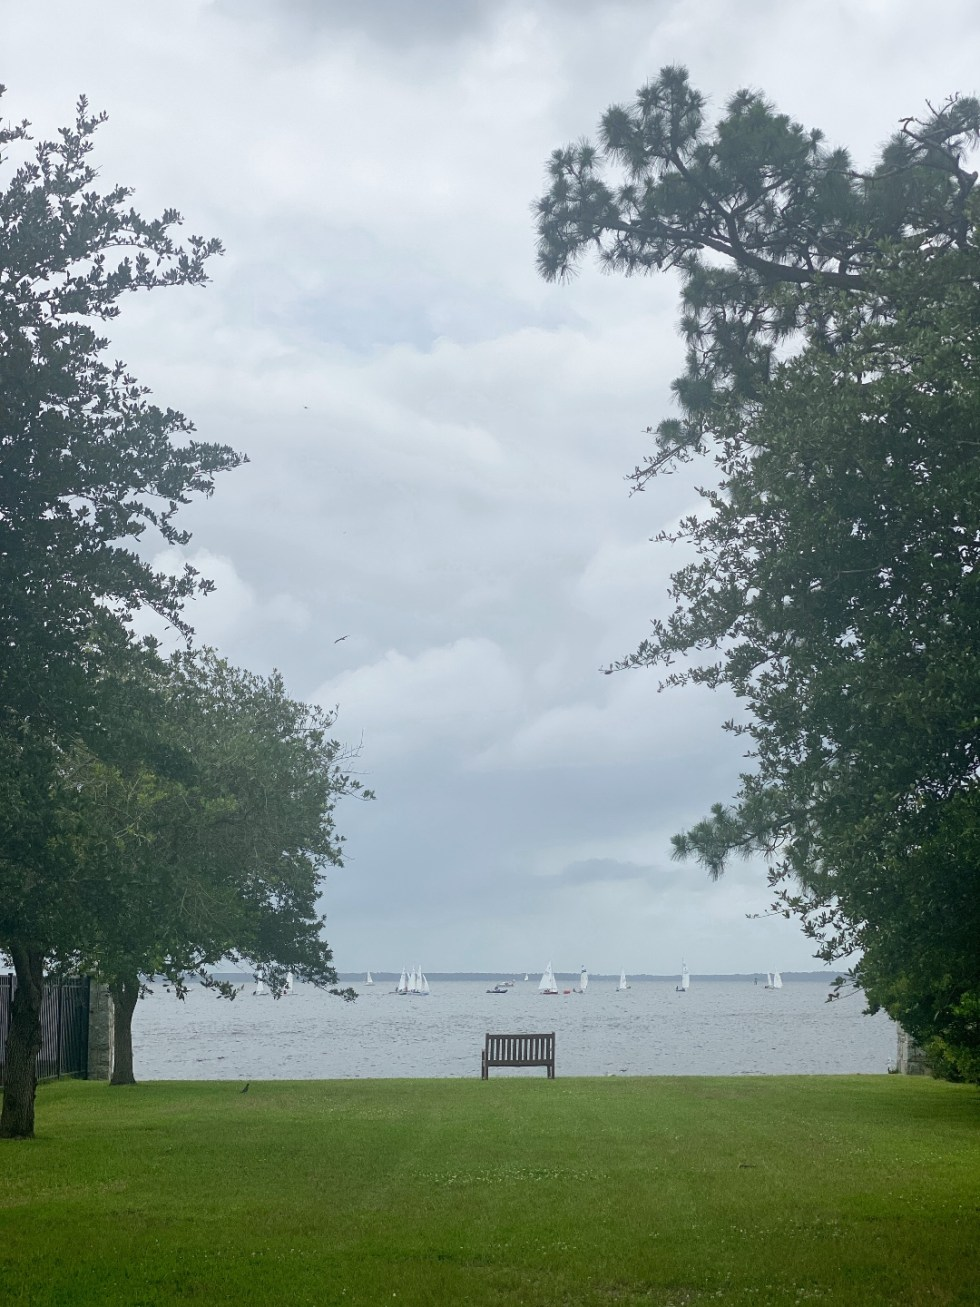 What to Do in Oriental, NC - I'm Fixin' To - @imfixintoblog | Things to do in Oriental NC by popular NC travel blog, I'm Fixin' To: image of a waterfront with sailboats on the horizon.